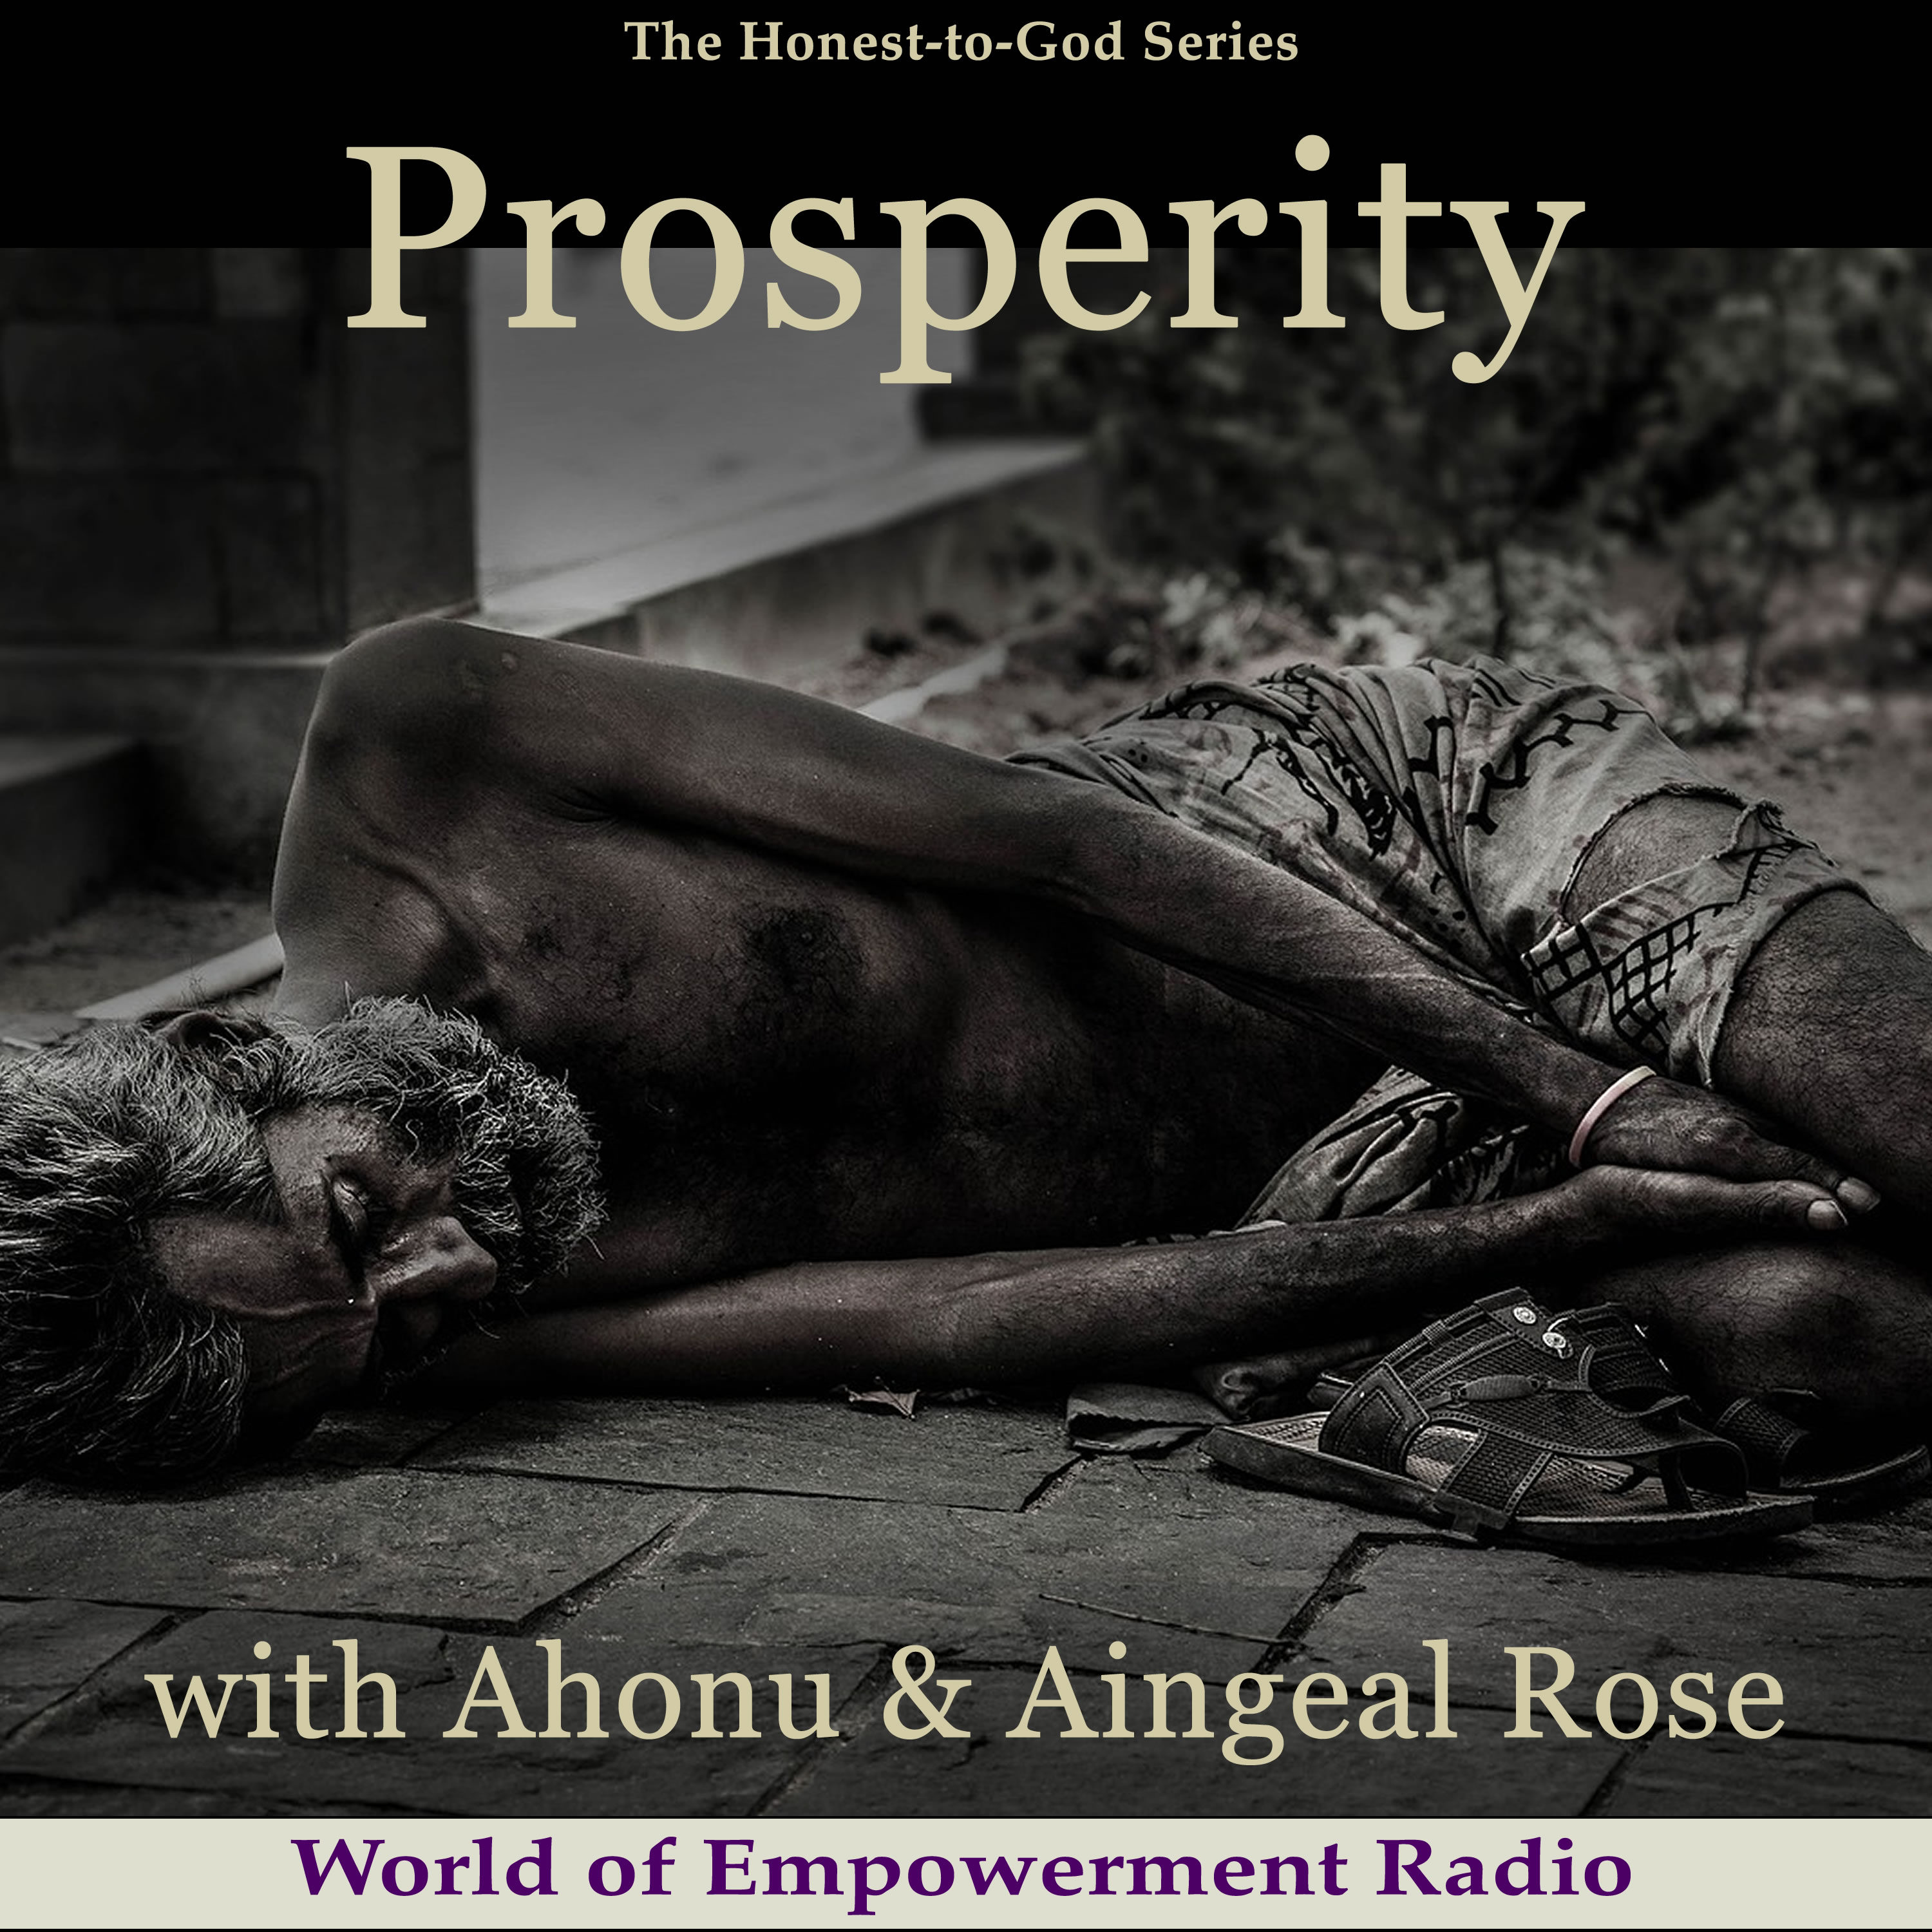 Aingeal Rose & Ahonu on The Honest-to-God Series discussing Prosperity